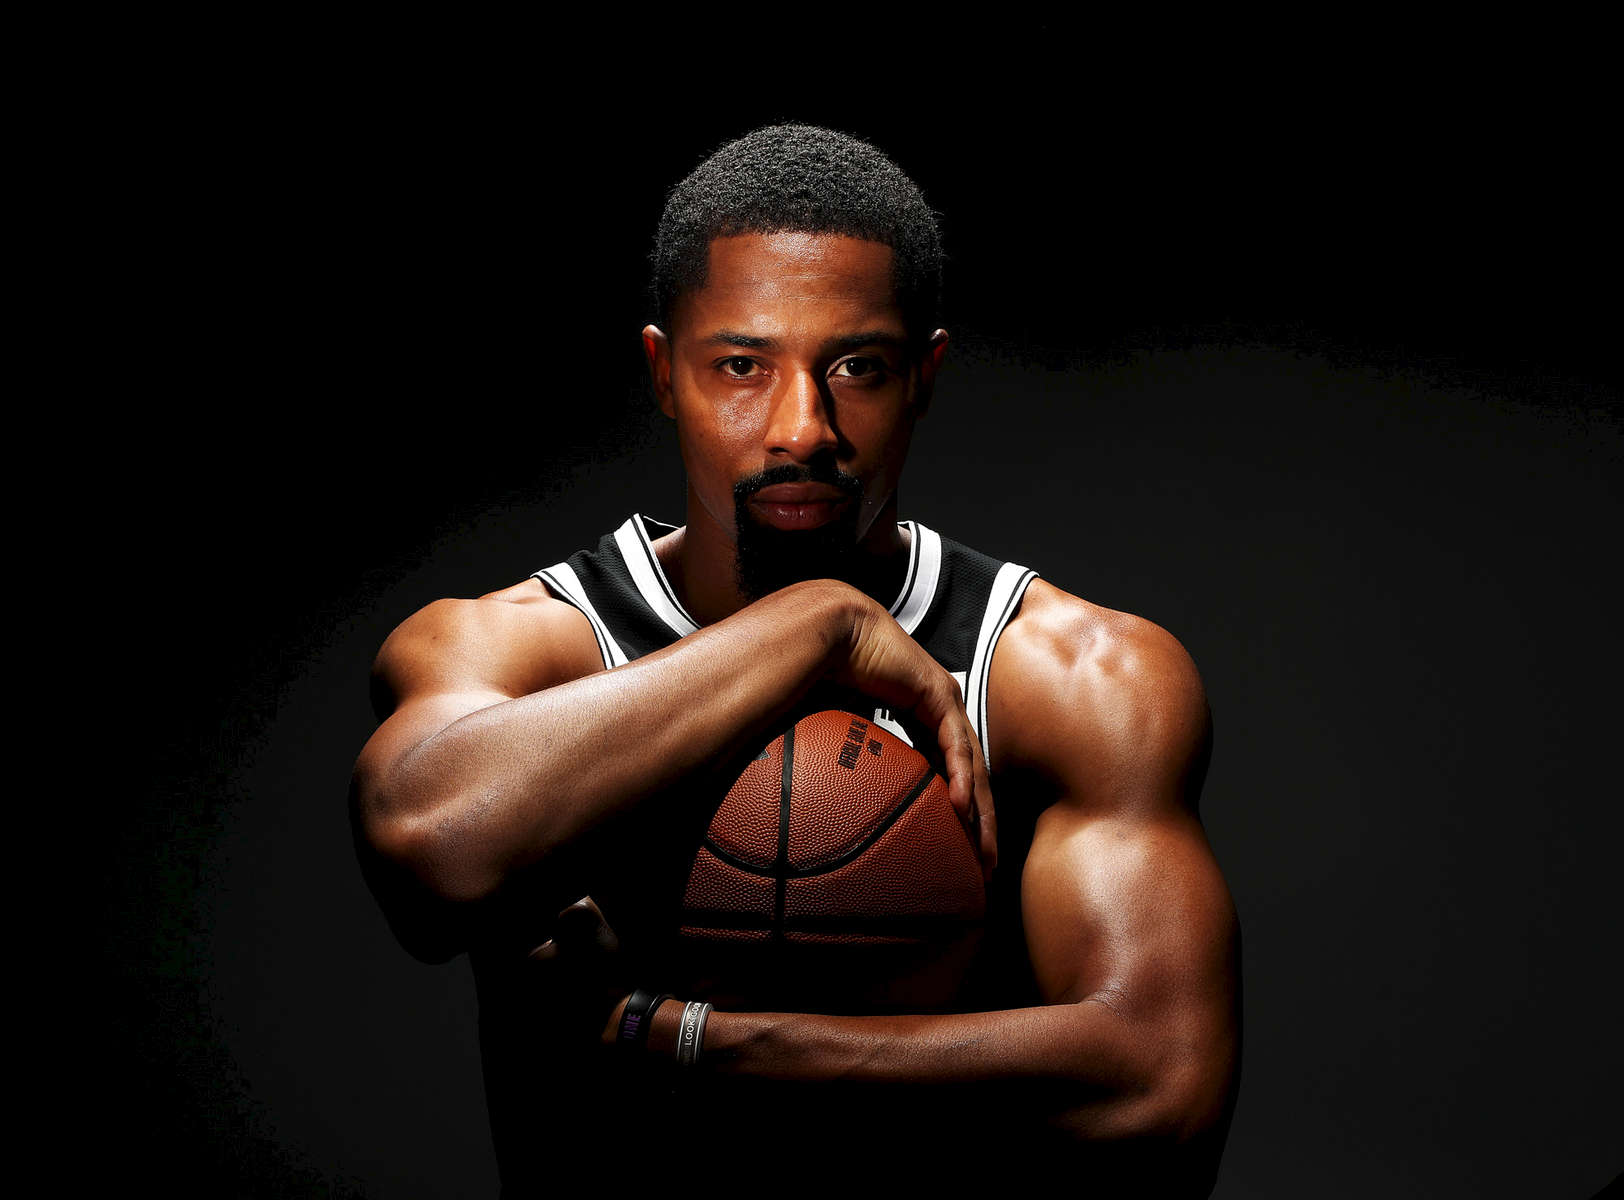 Spencer Dinwiddie of the Brooklyn Nets poses for a portrait during Media Day at HSS Training Center on September 27, 2019 in New York City.